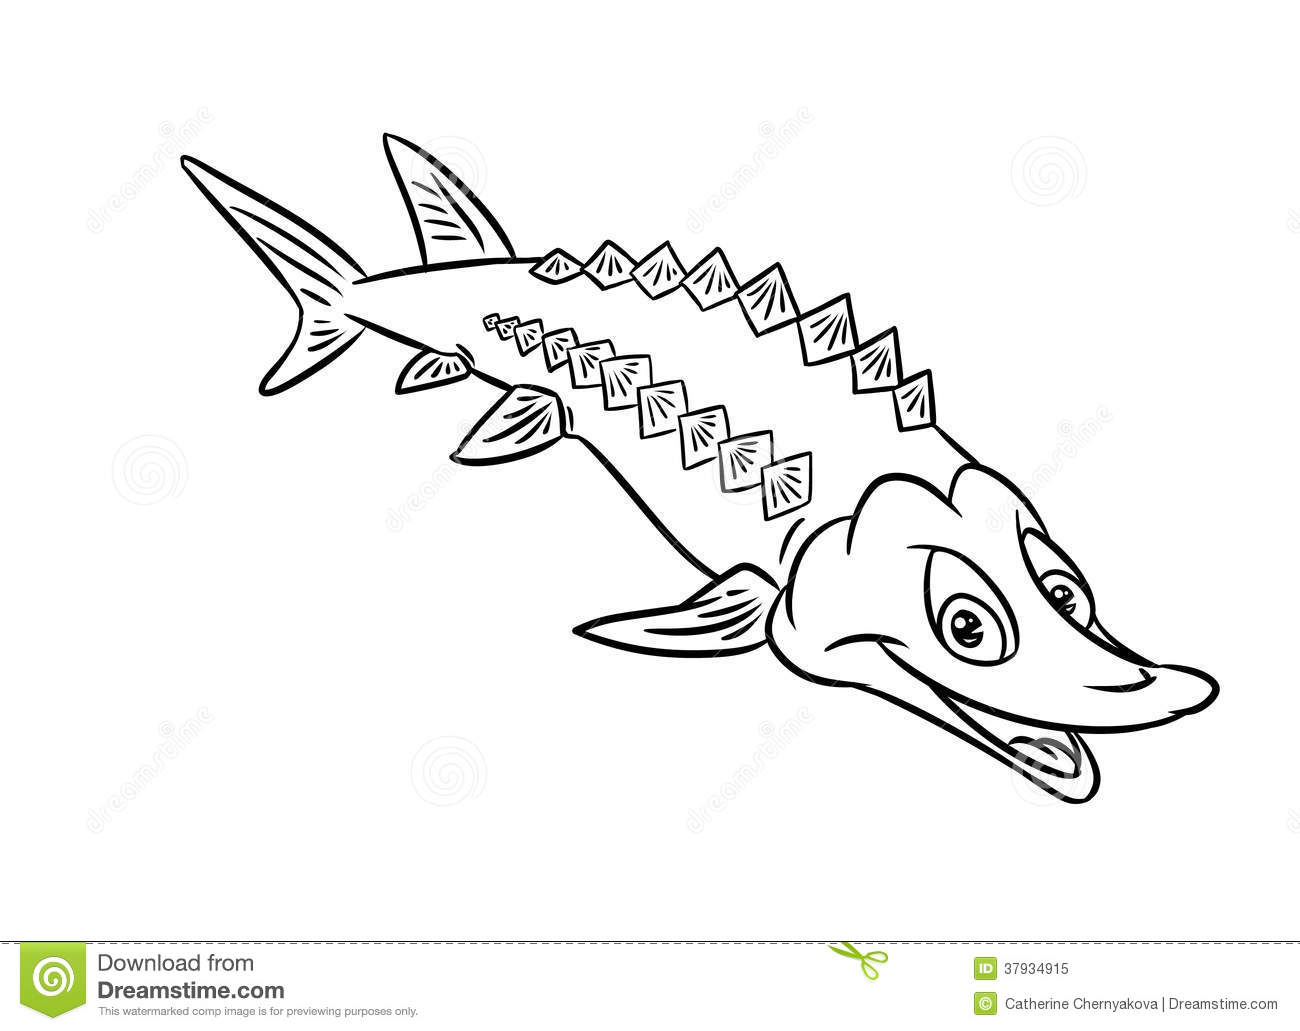 Sturgeon, Vector Cartoon Illustration Stock Vector.